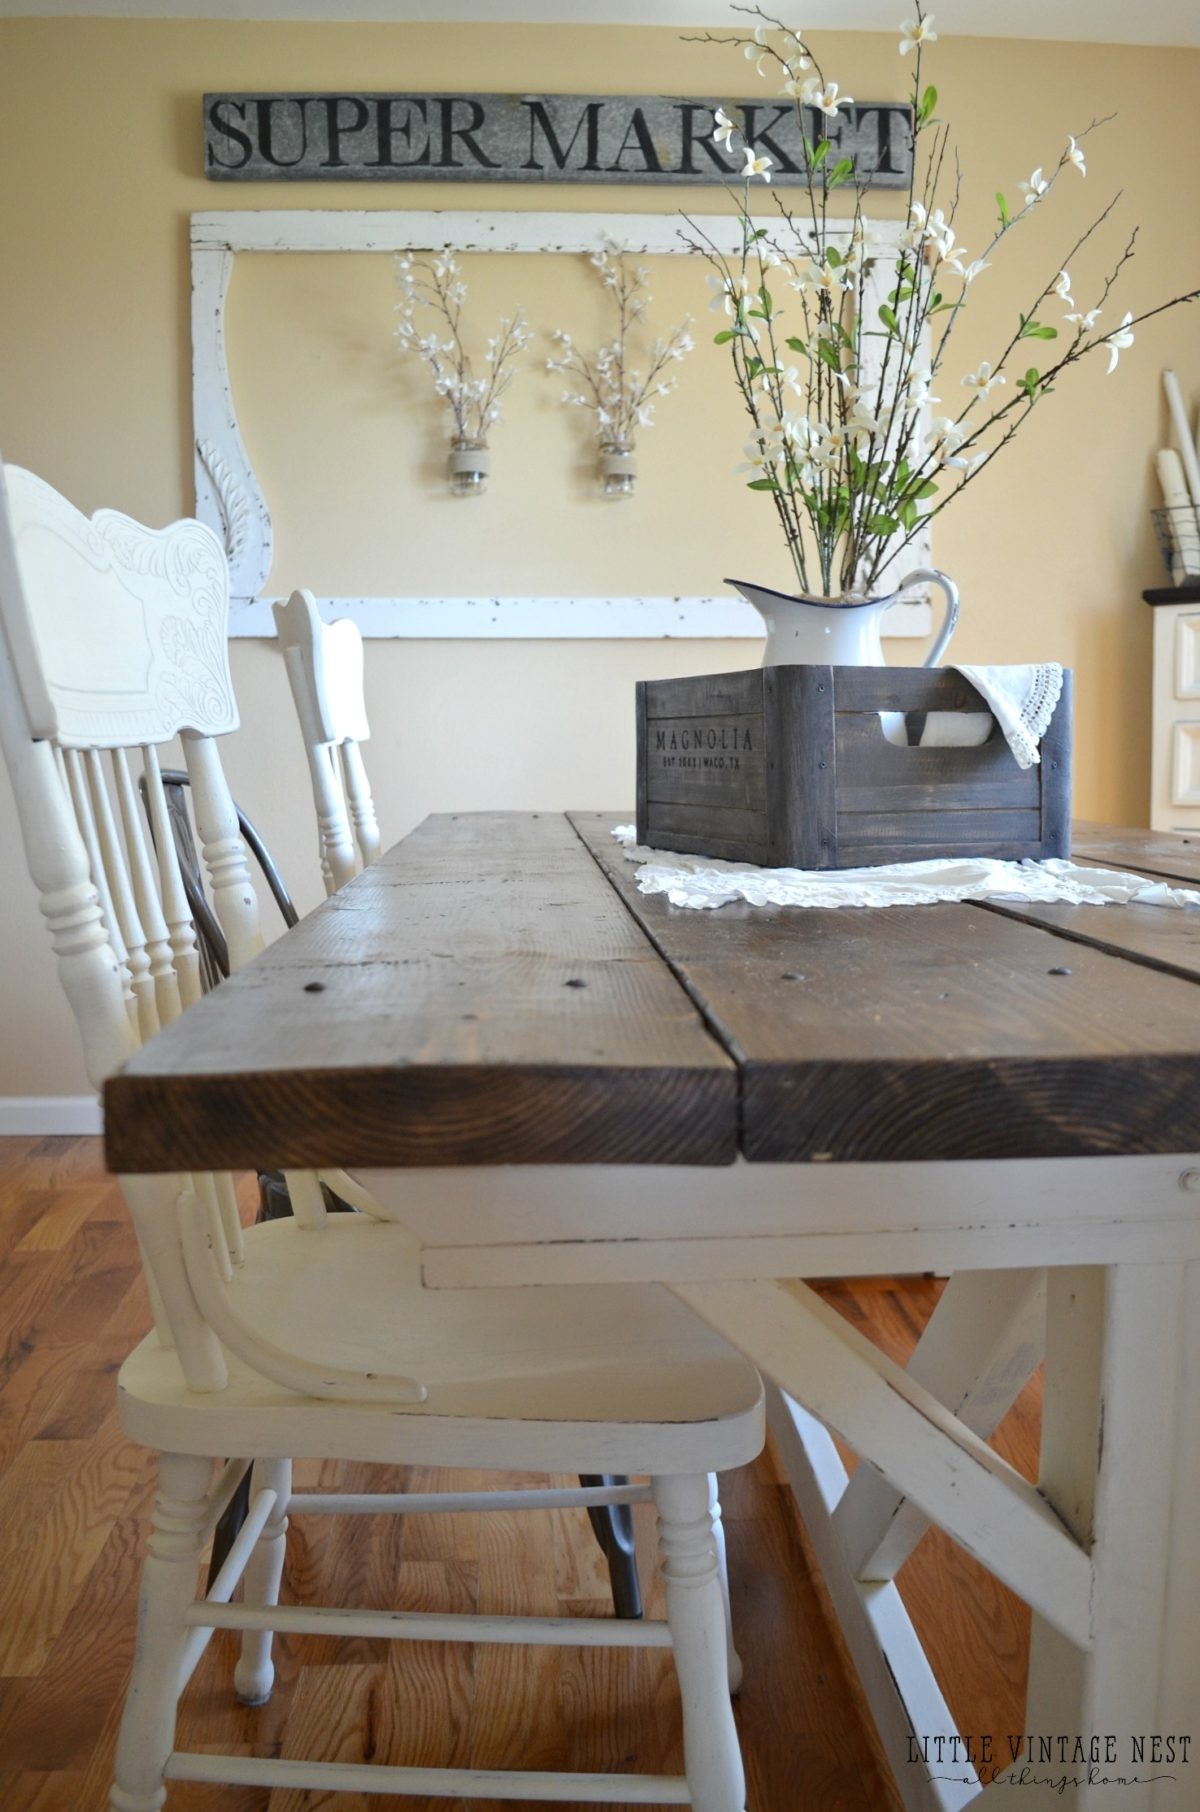 5 Ways to Style a Wooden Crate Dining Room Centerpiece